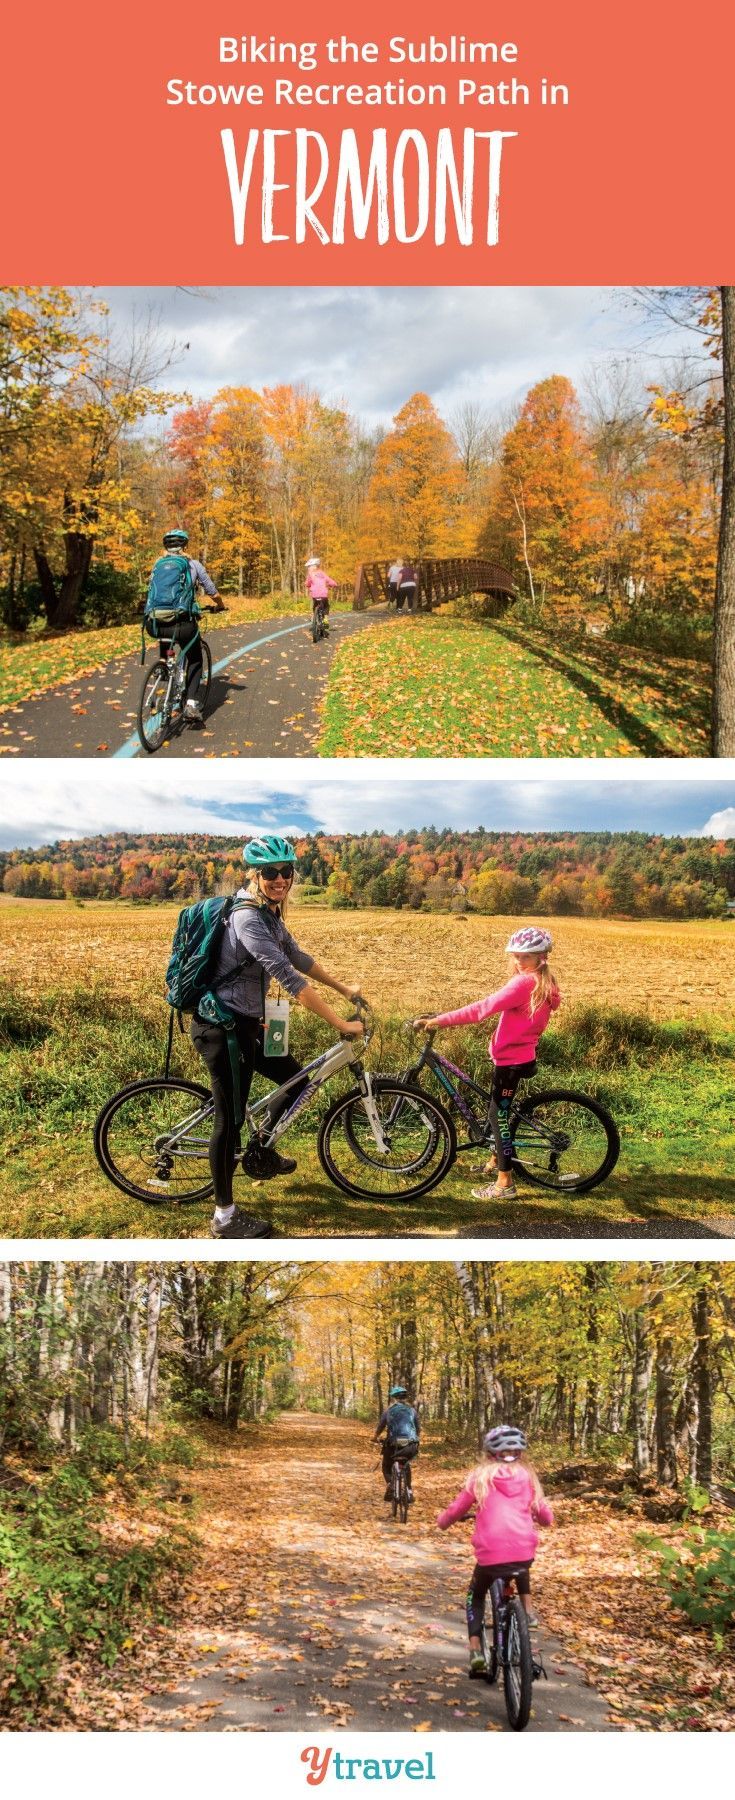 Biking the Sublime Stowe Recreation Path in Vermont